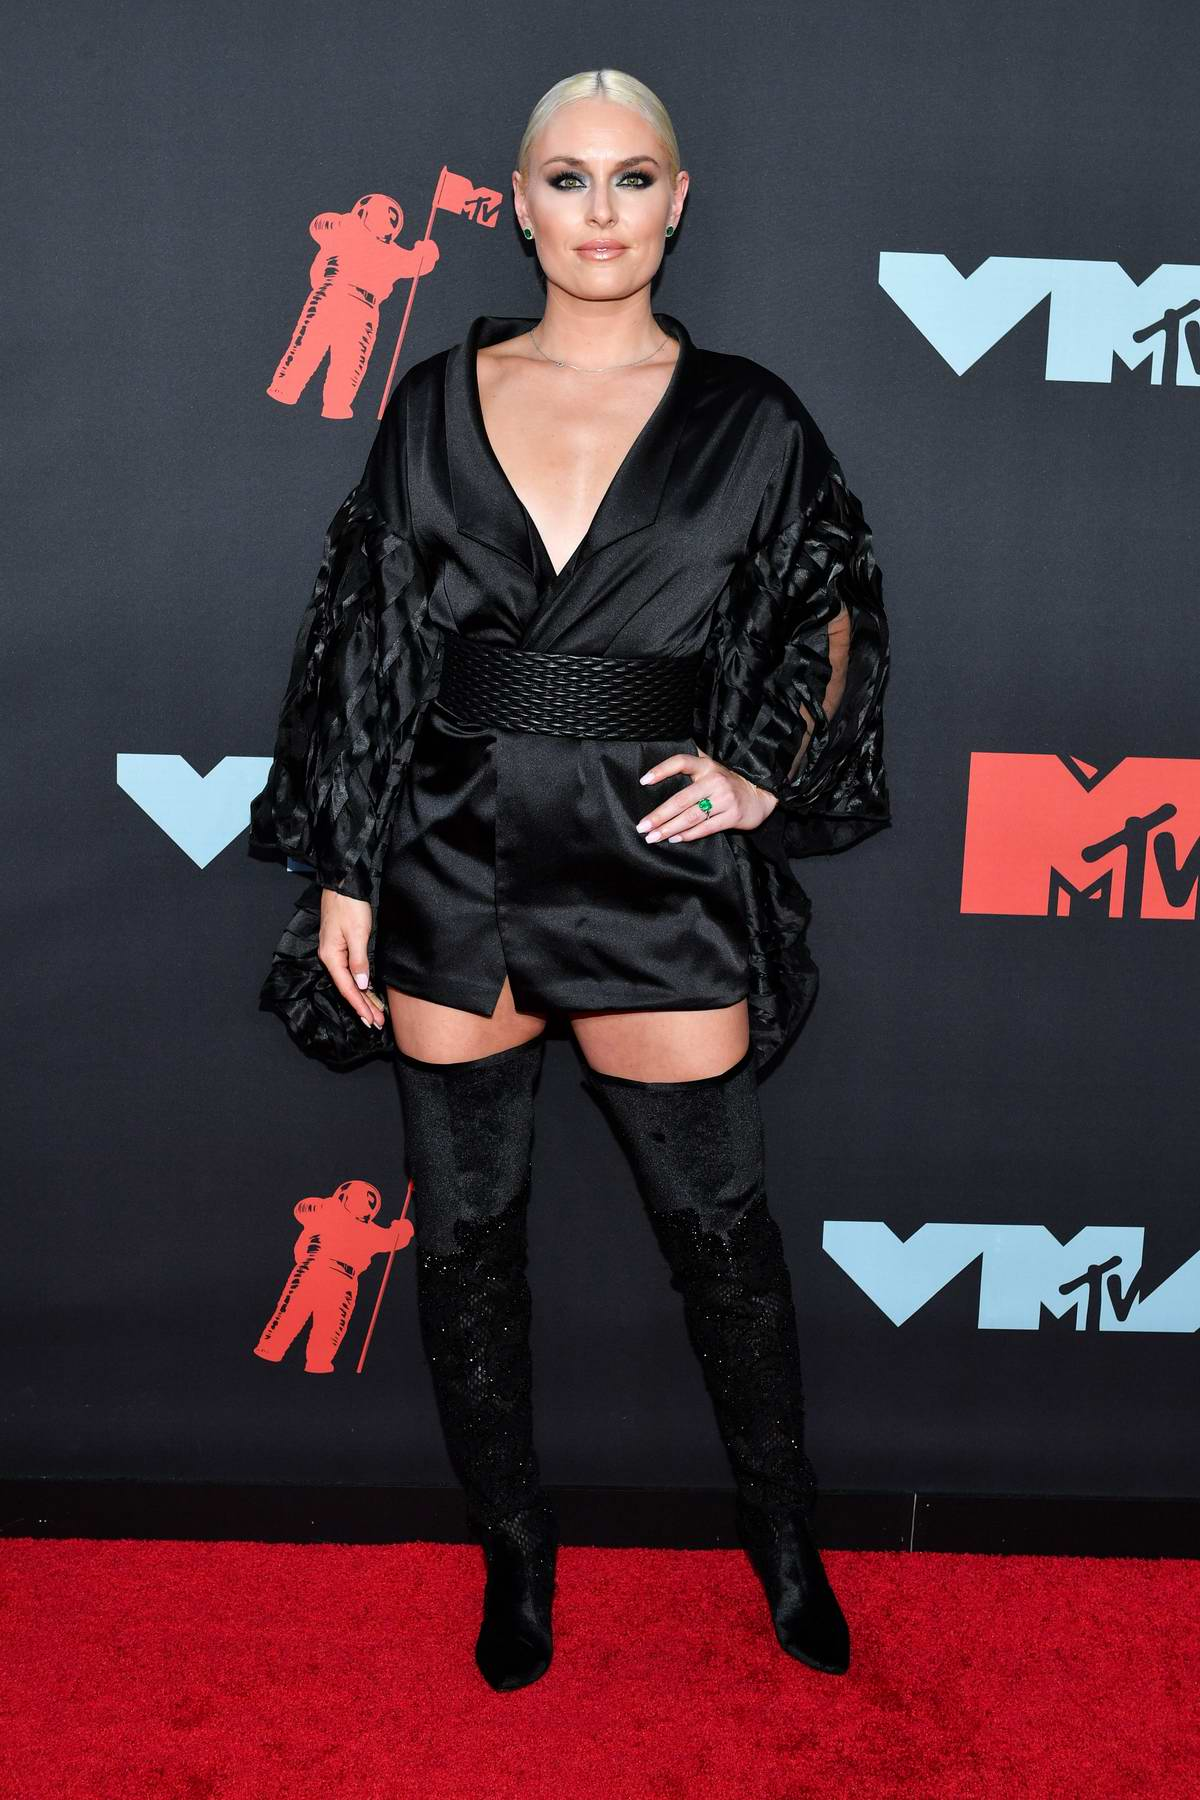 Lindsey Vonn attends the 2019 MTV Video Music Awards at Prudential Center in Newark, New Jersey